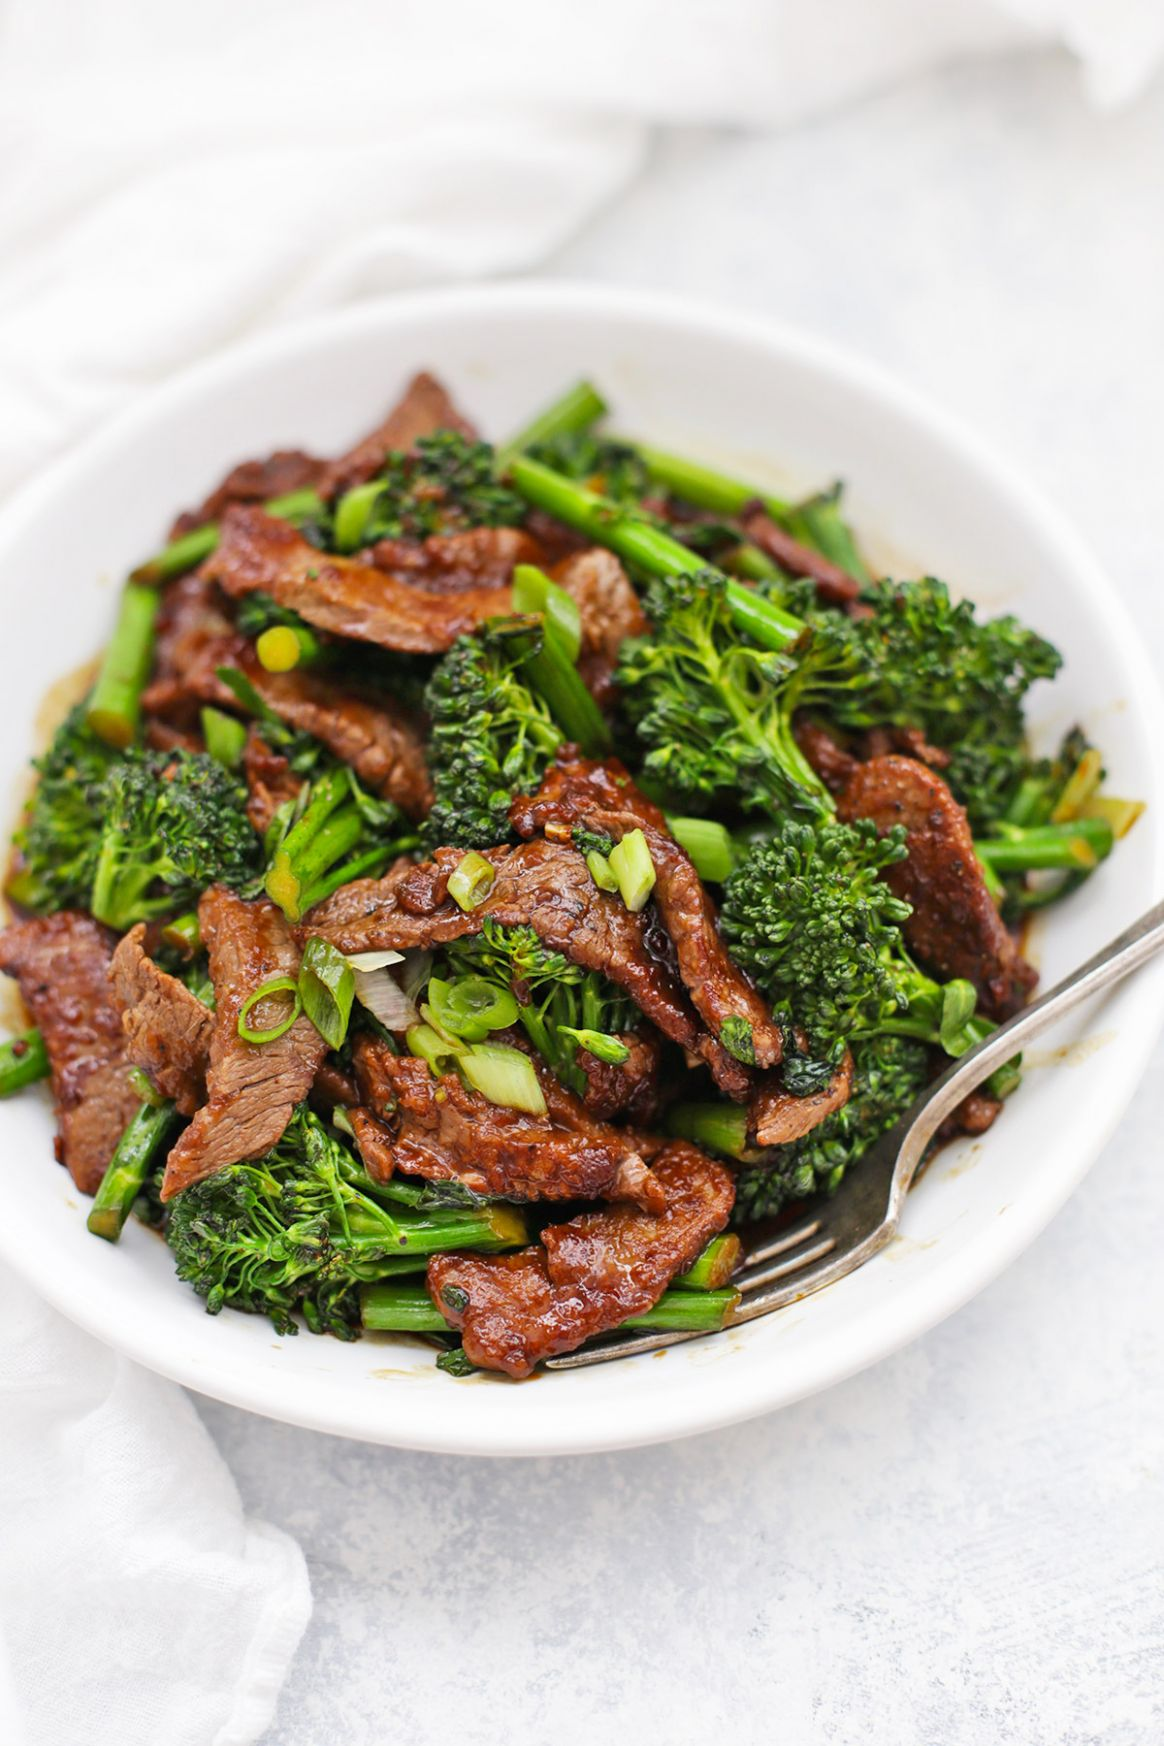 Healthy Beef and Broccoli - Beef Recipes Healthy